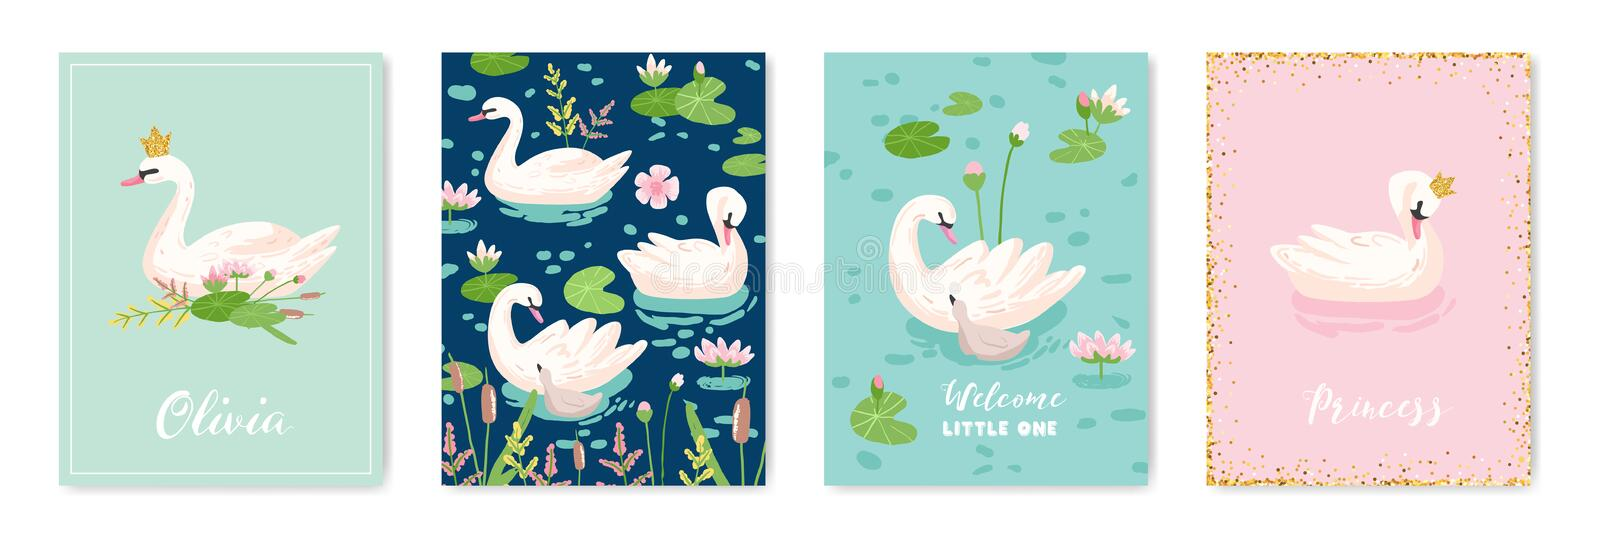 Collection of Beautiful Swans Posters for Design Print, Baby Greetings, Arrival Cards, Invitation, Children Store Flyer stock illustration